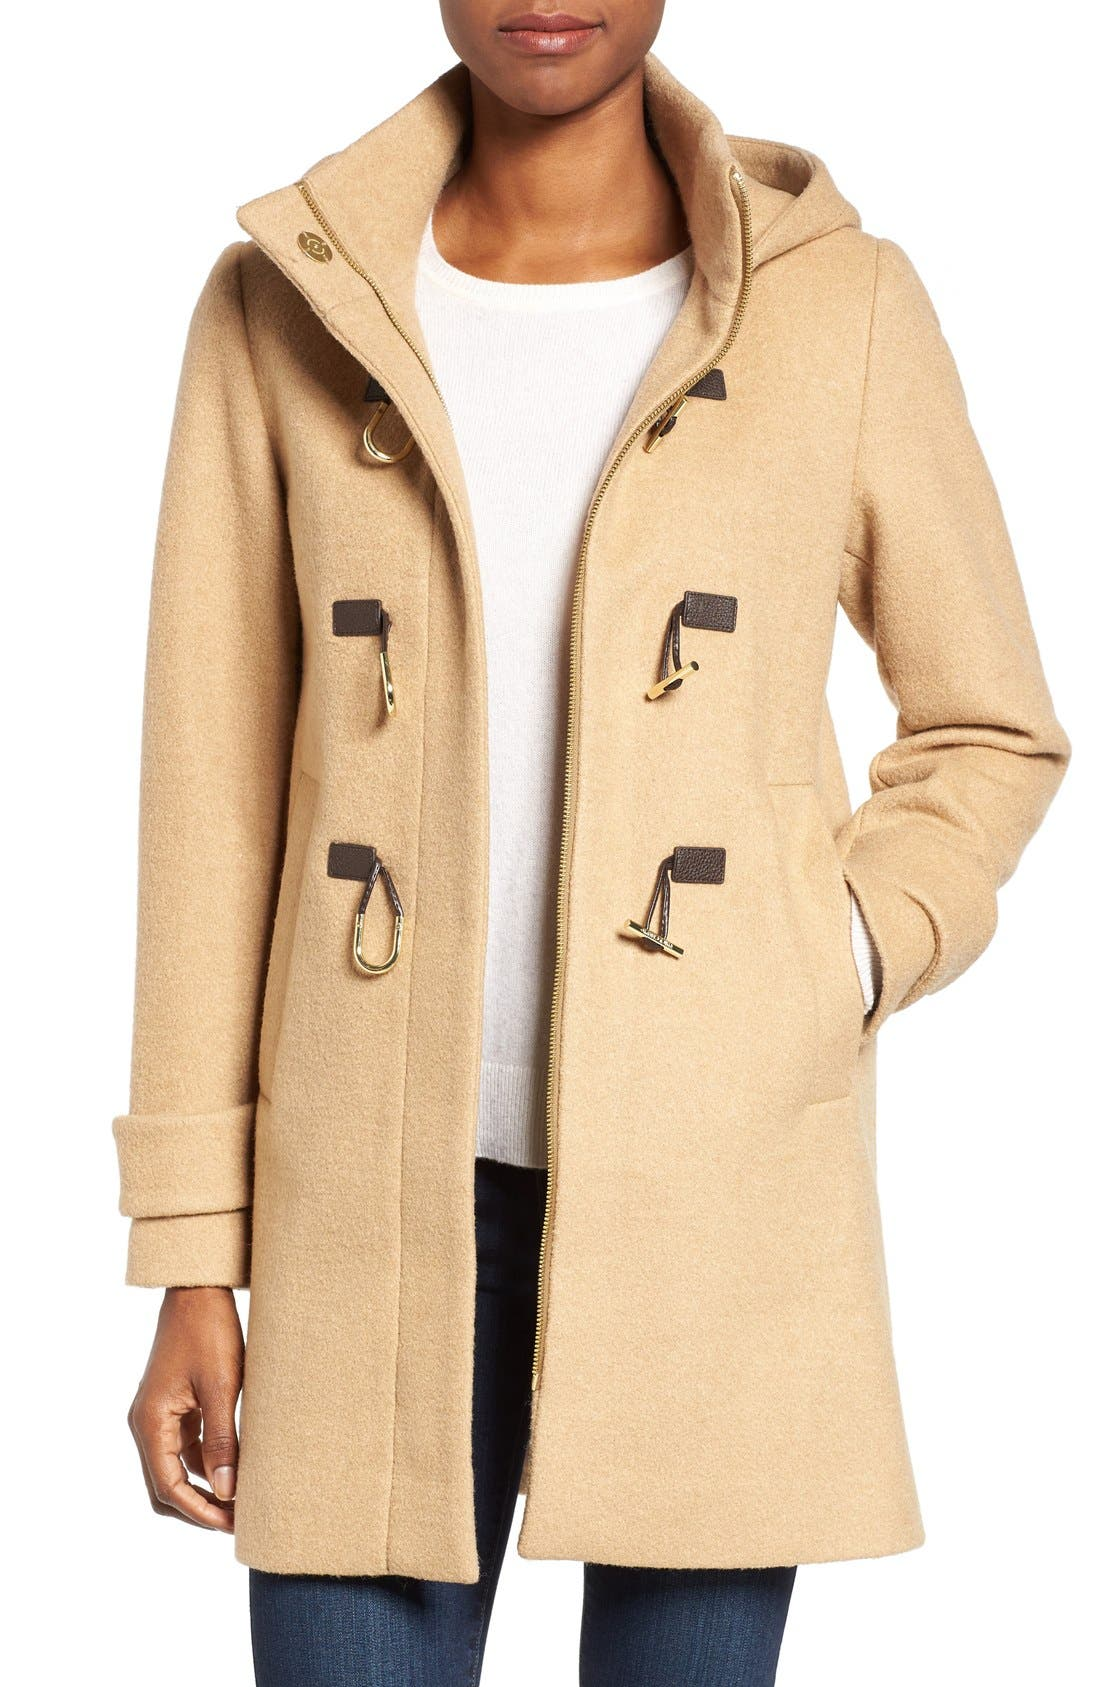 Alternate Image 1 Selected - Vince Camuto Boiled Wool Blend Duffle Coat